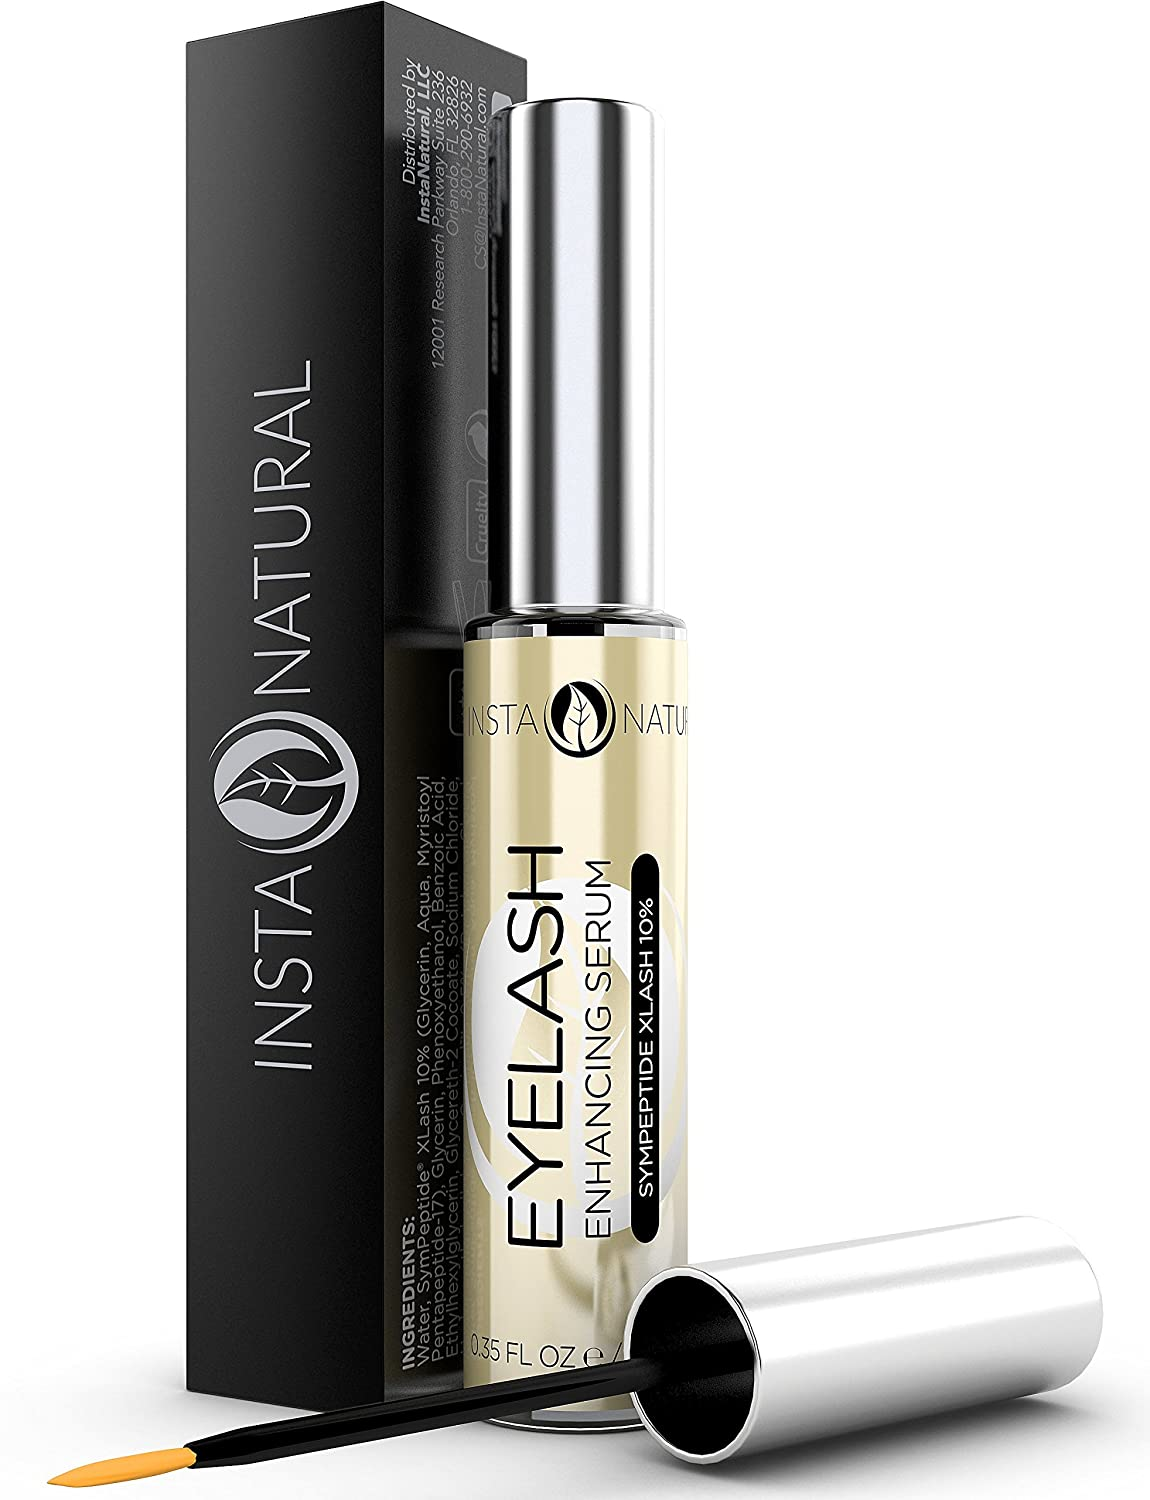 Eyelash & Eyebrow Growth Serum 10ML Best Lash Enhancing Treatment for Longer, Fuller Eyelashes & Thicker Eyebrows - With Pentapeptide-17 & Clinically Proven SymPeptide XLash Formula